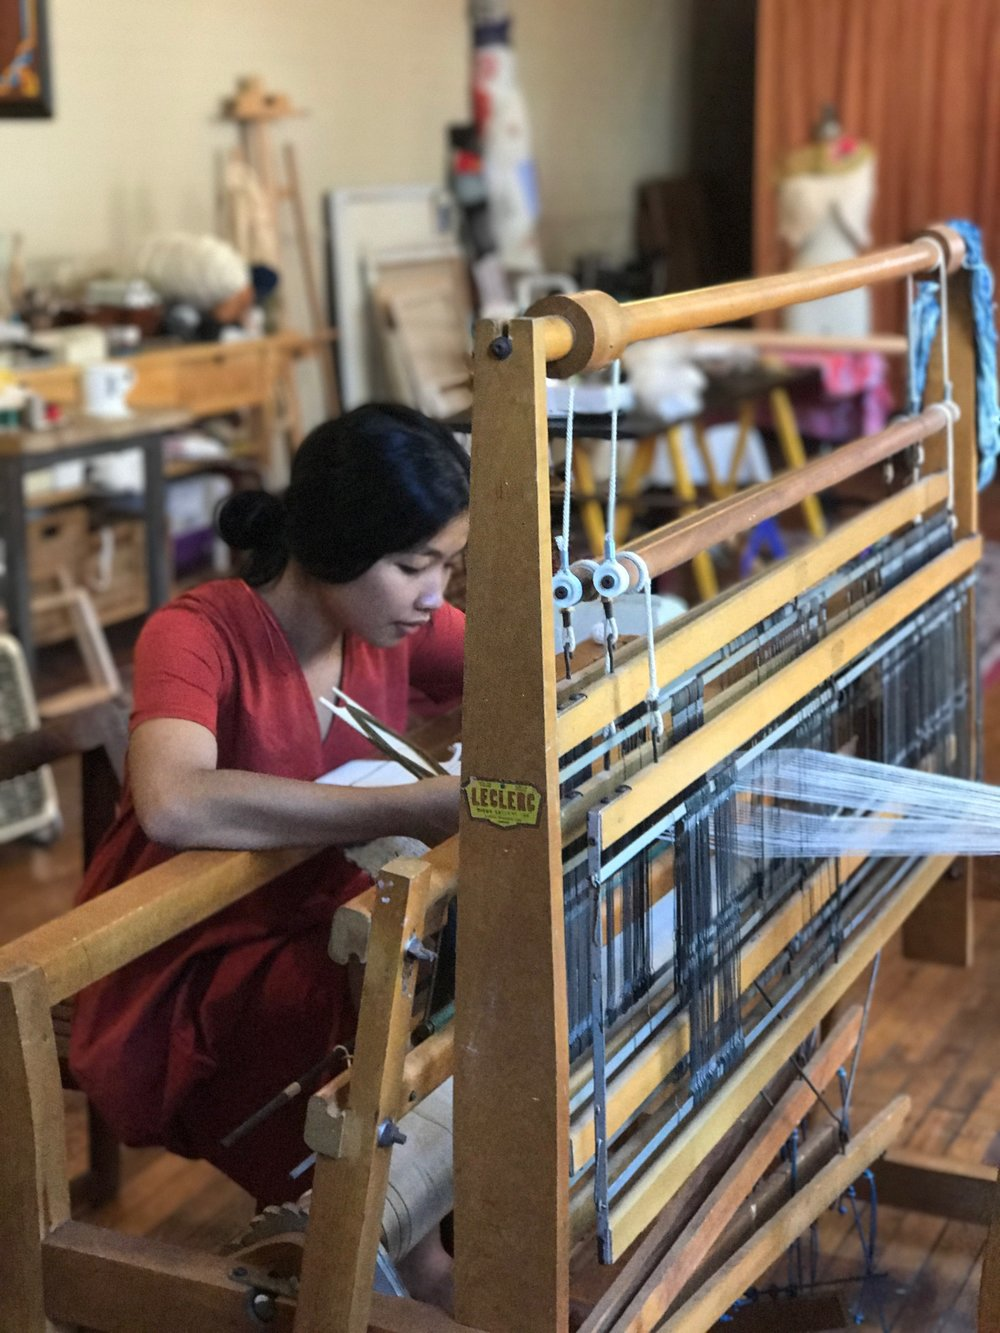 Weaving on my favorite floor loom